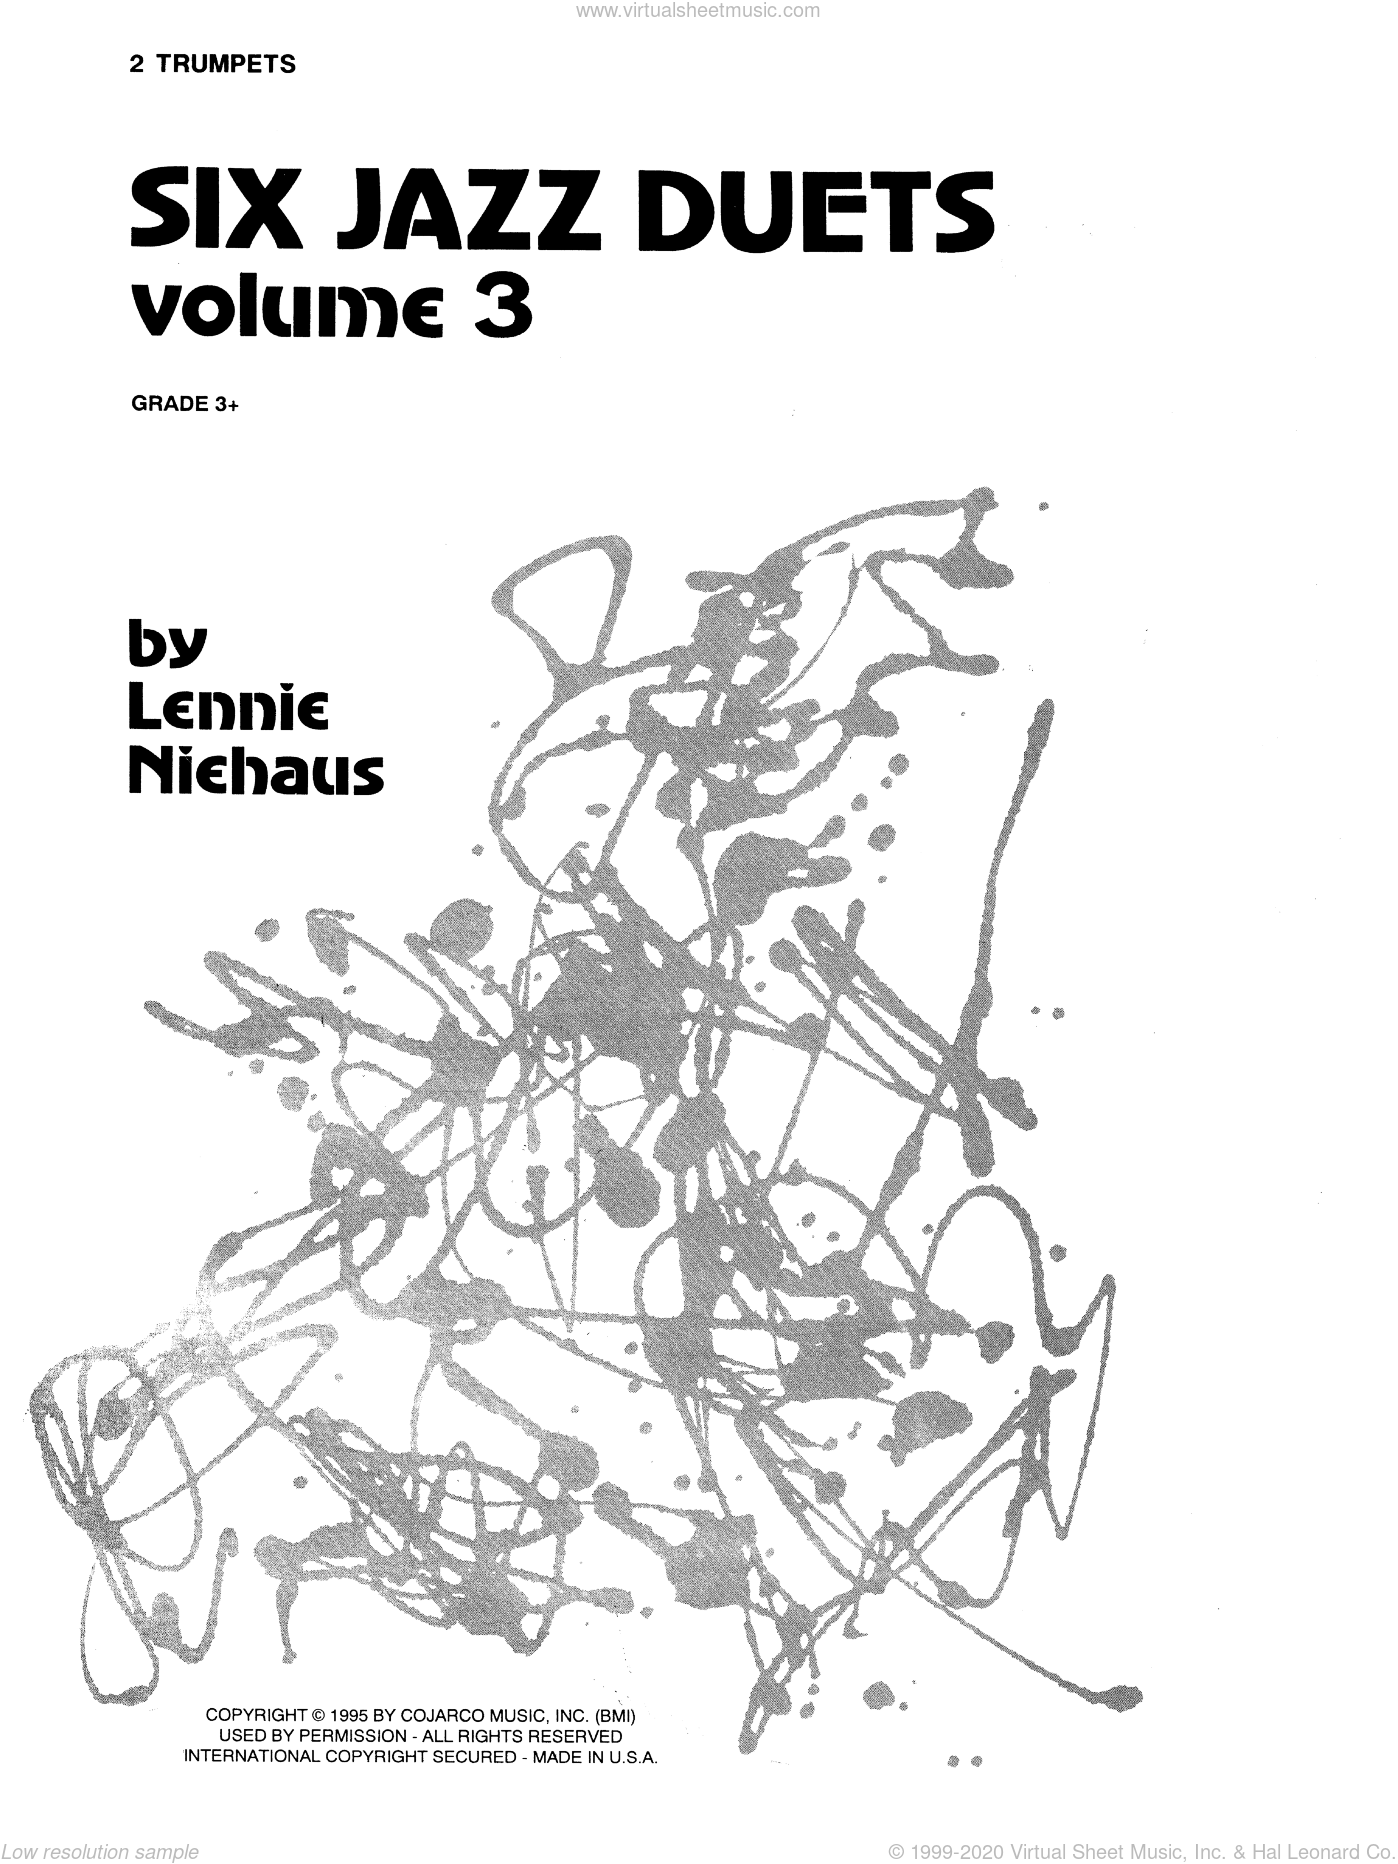 Six Jazz Duets, Volume 3 sheet music for two trumpets by Lennie Niehaus, intermediate duet